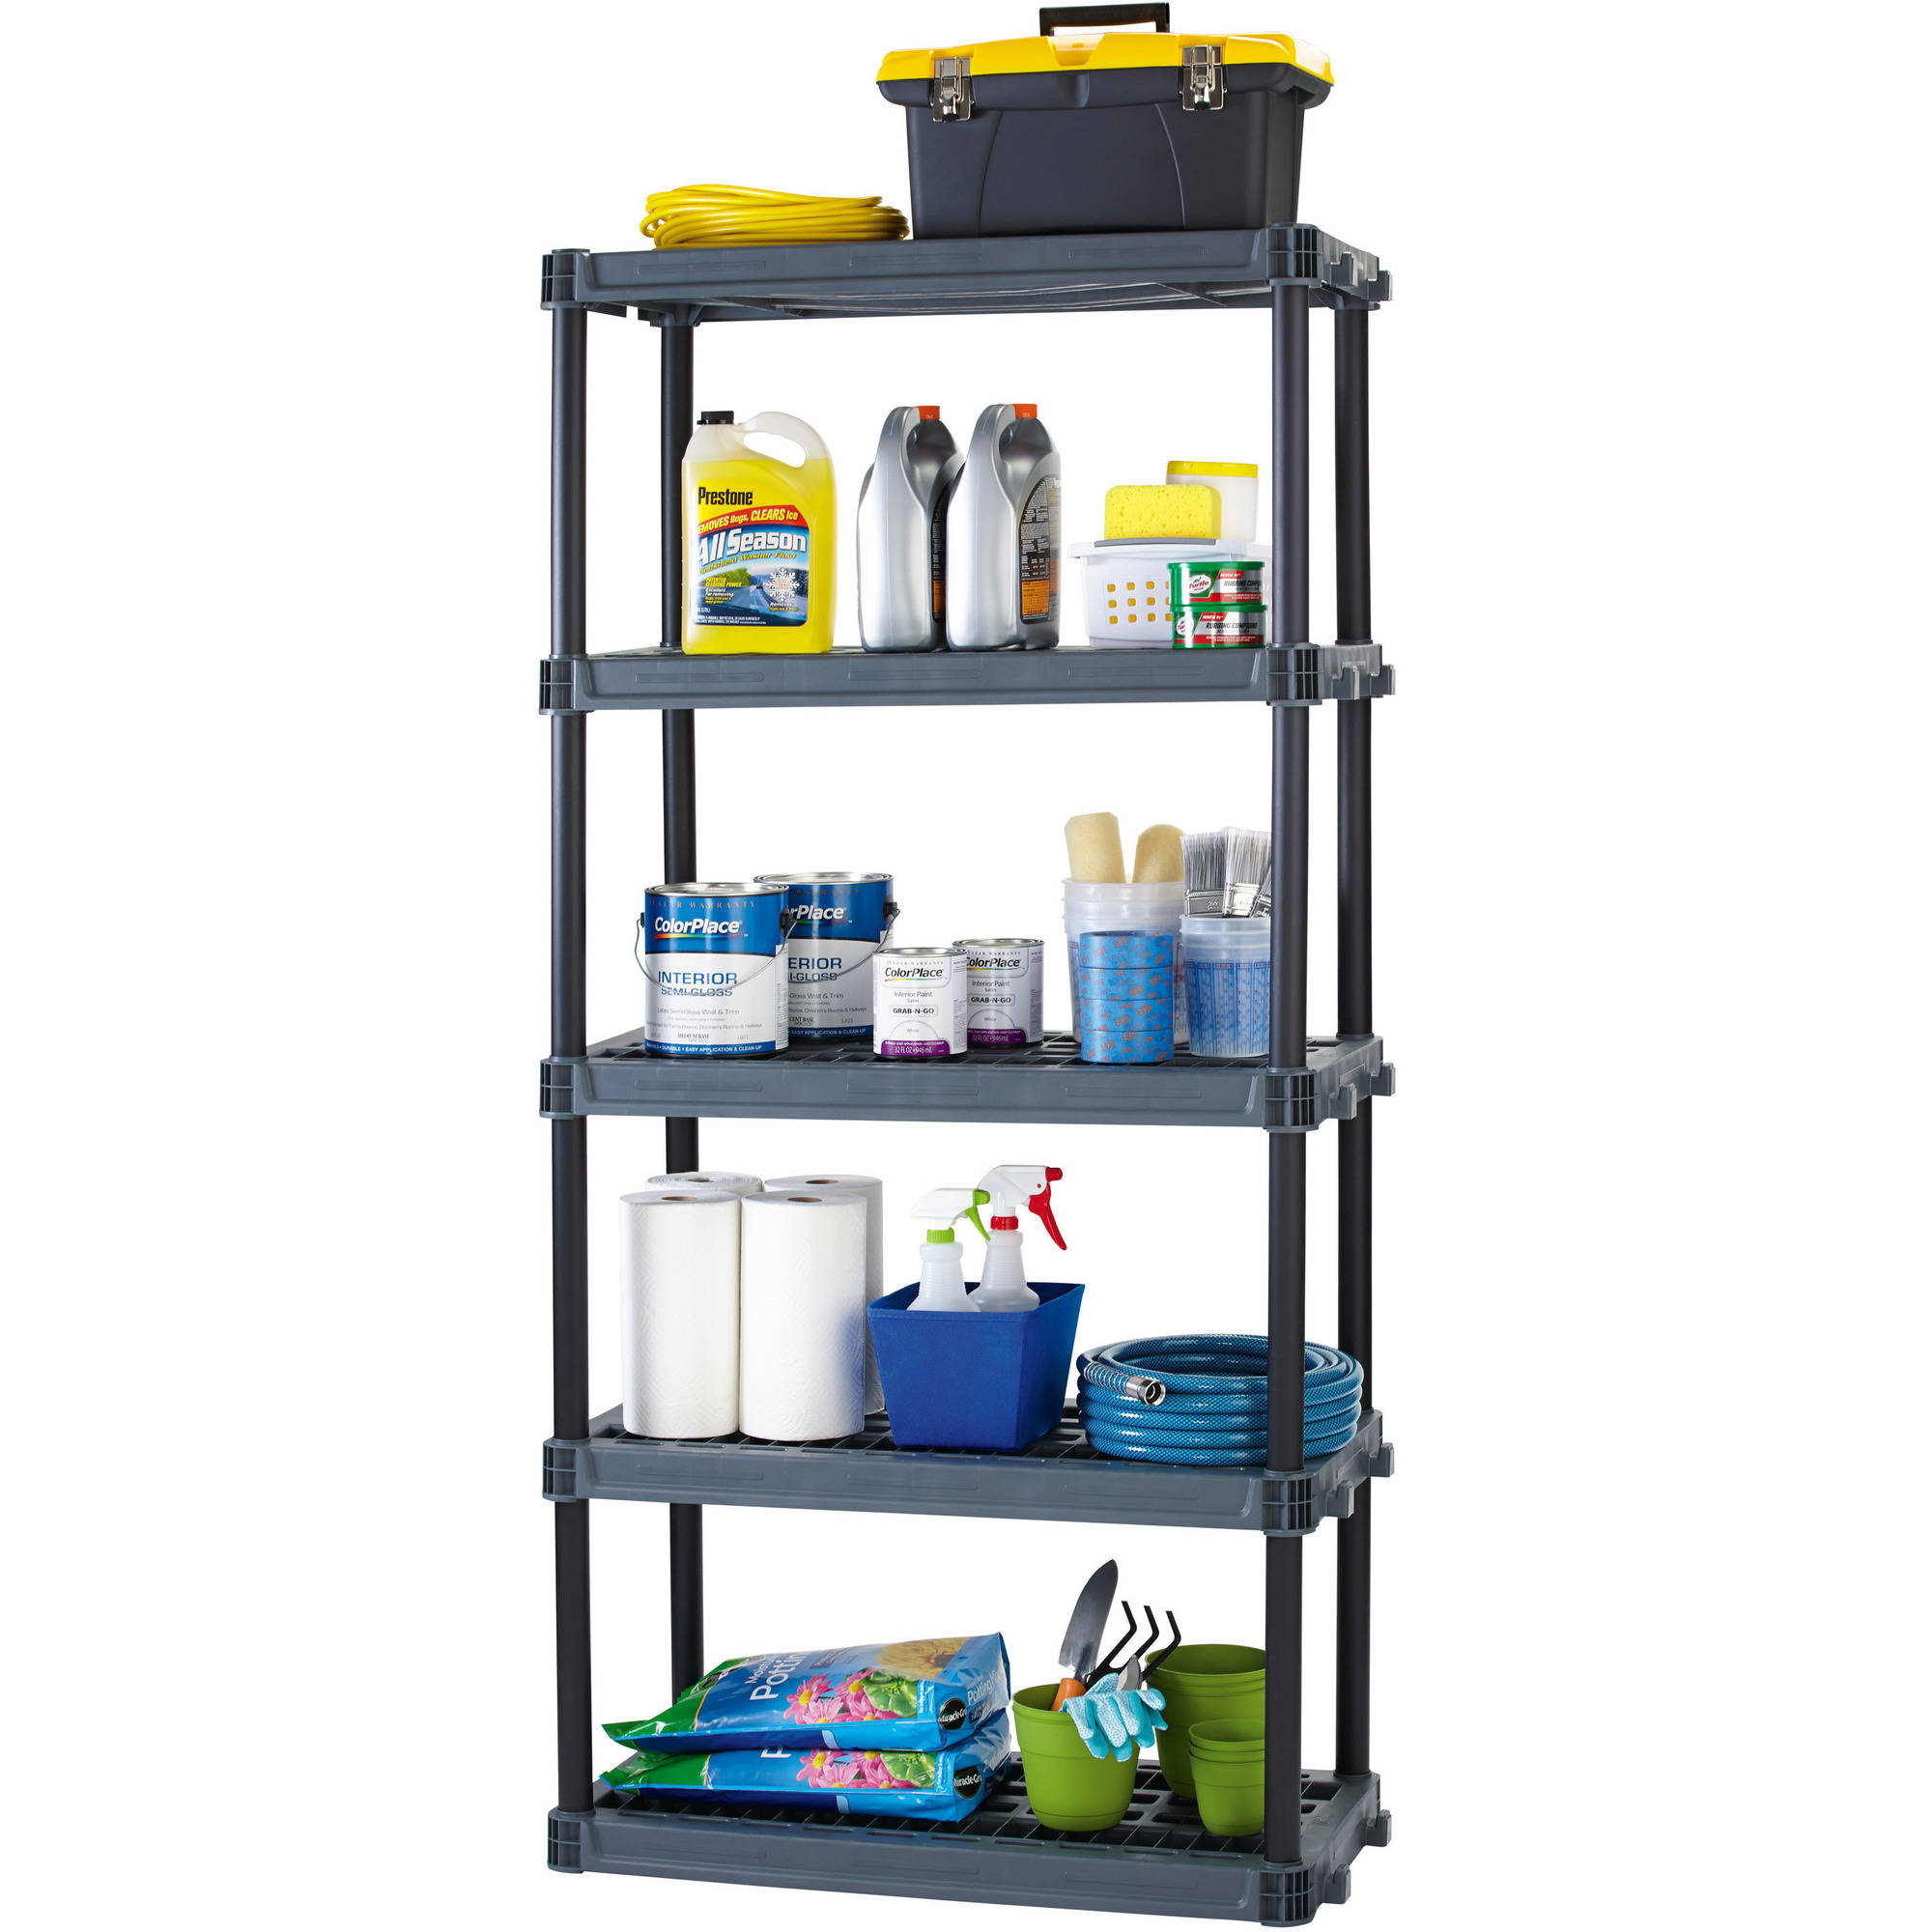 WorkChoice 5 Shelf Heavy Duty Plastic Storage Unit, Black   Walmart.com